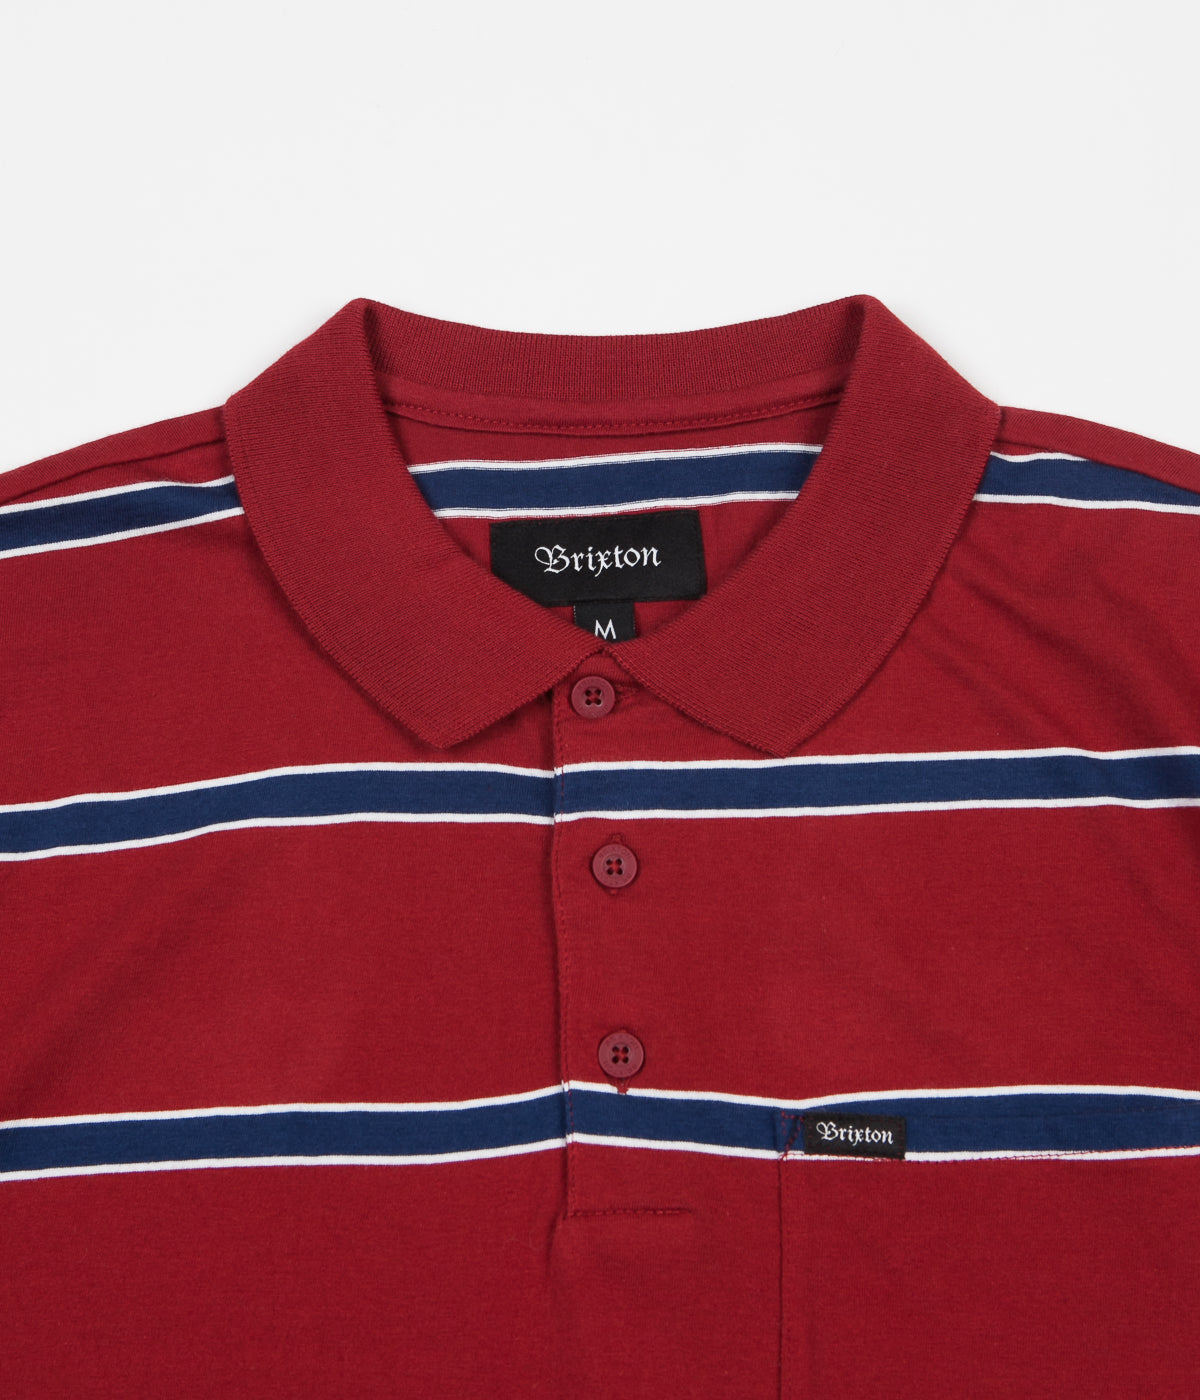 Brixton Hilt Washed Polo Shirt - Burgundy / Navy